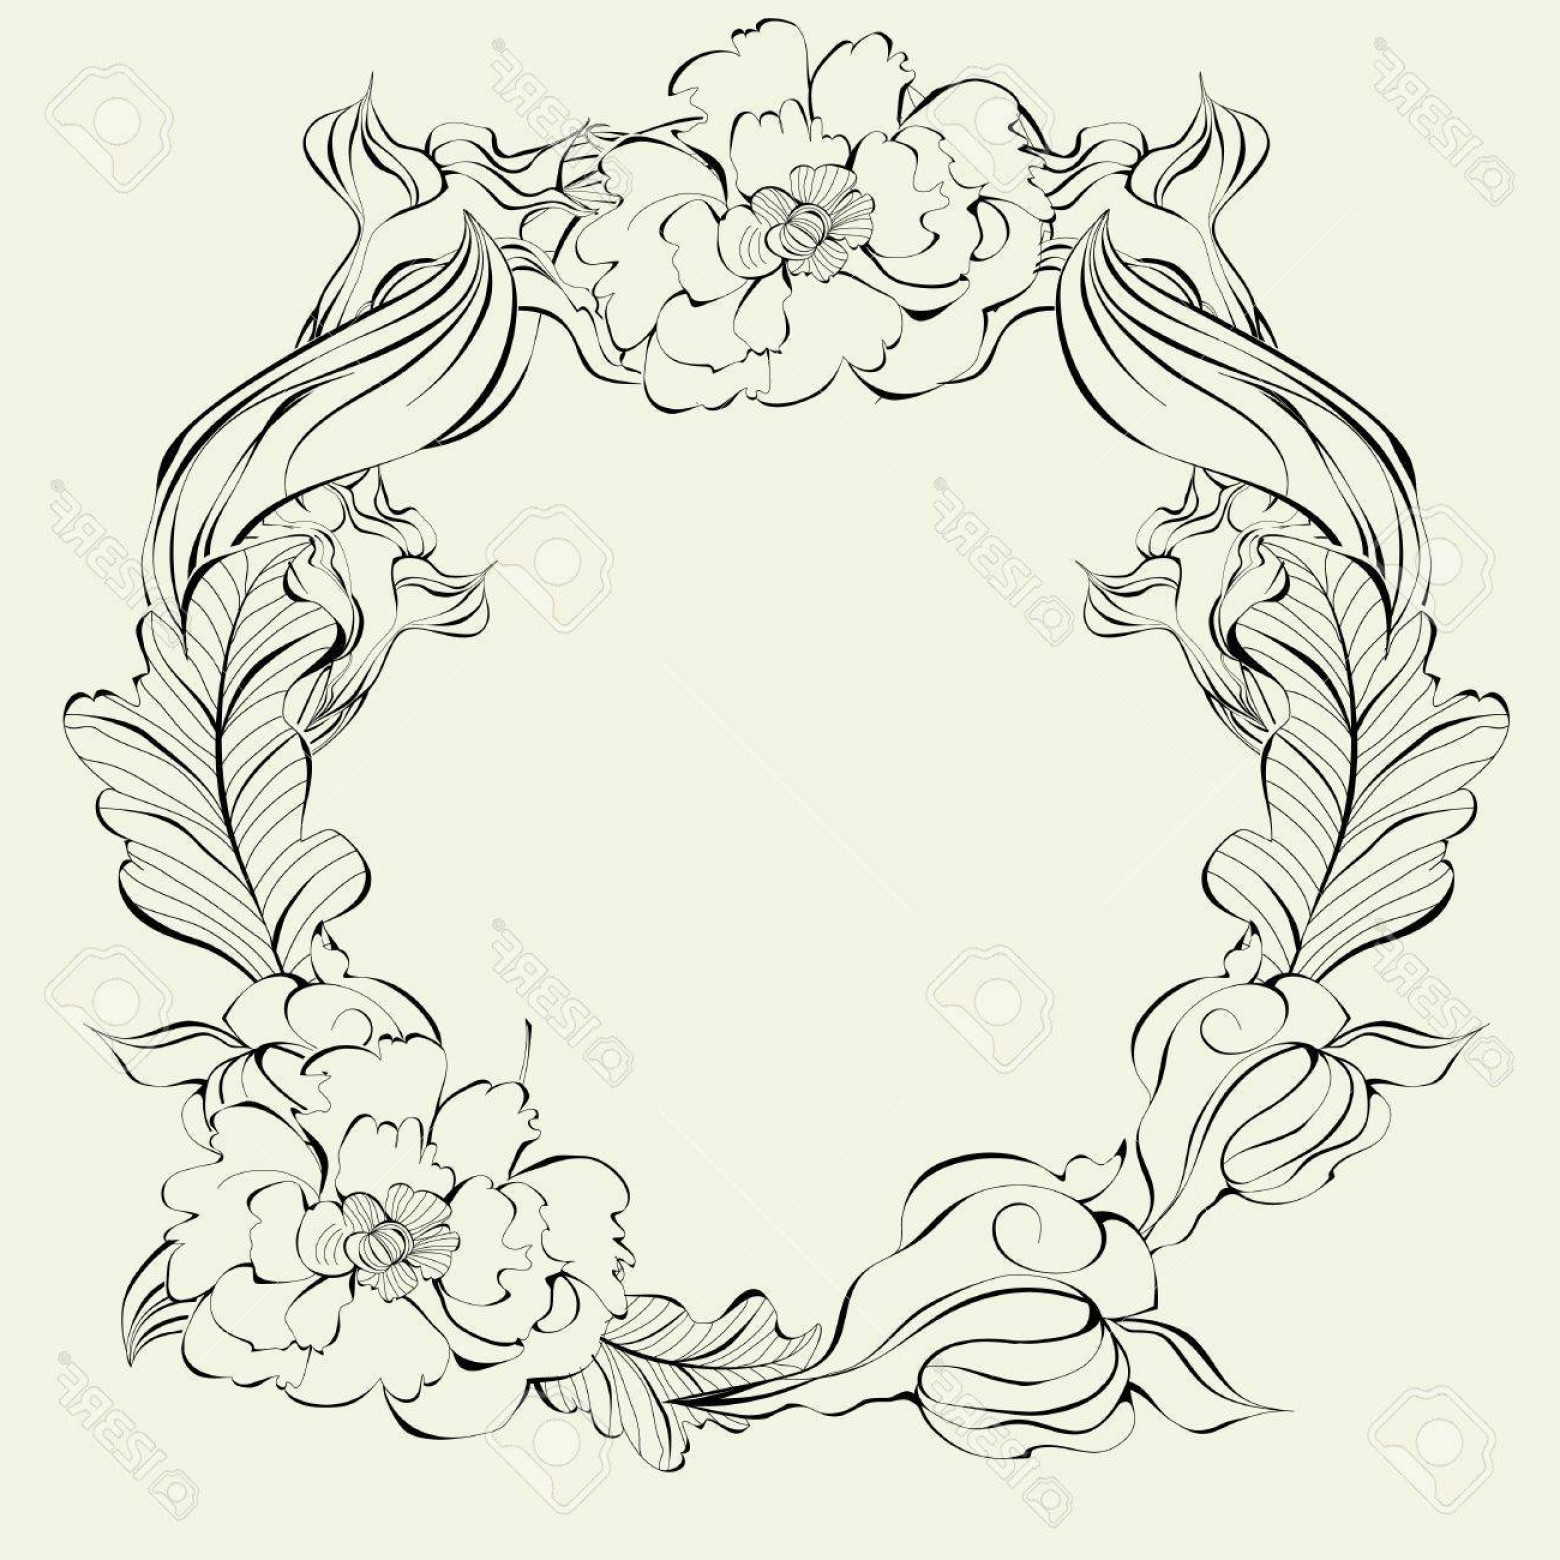 Decorative Font Vector Illustration: Incredible Decorative Font Letter Royalty Cliparts Vectors And Pic For O Popular Clip Art Ideas